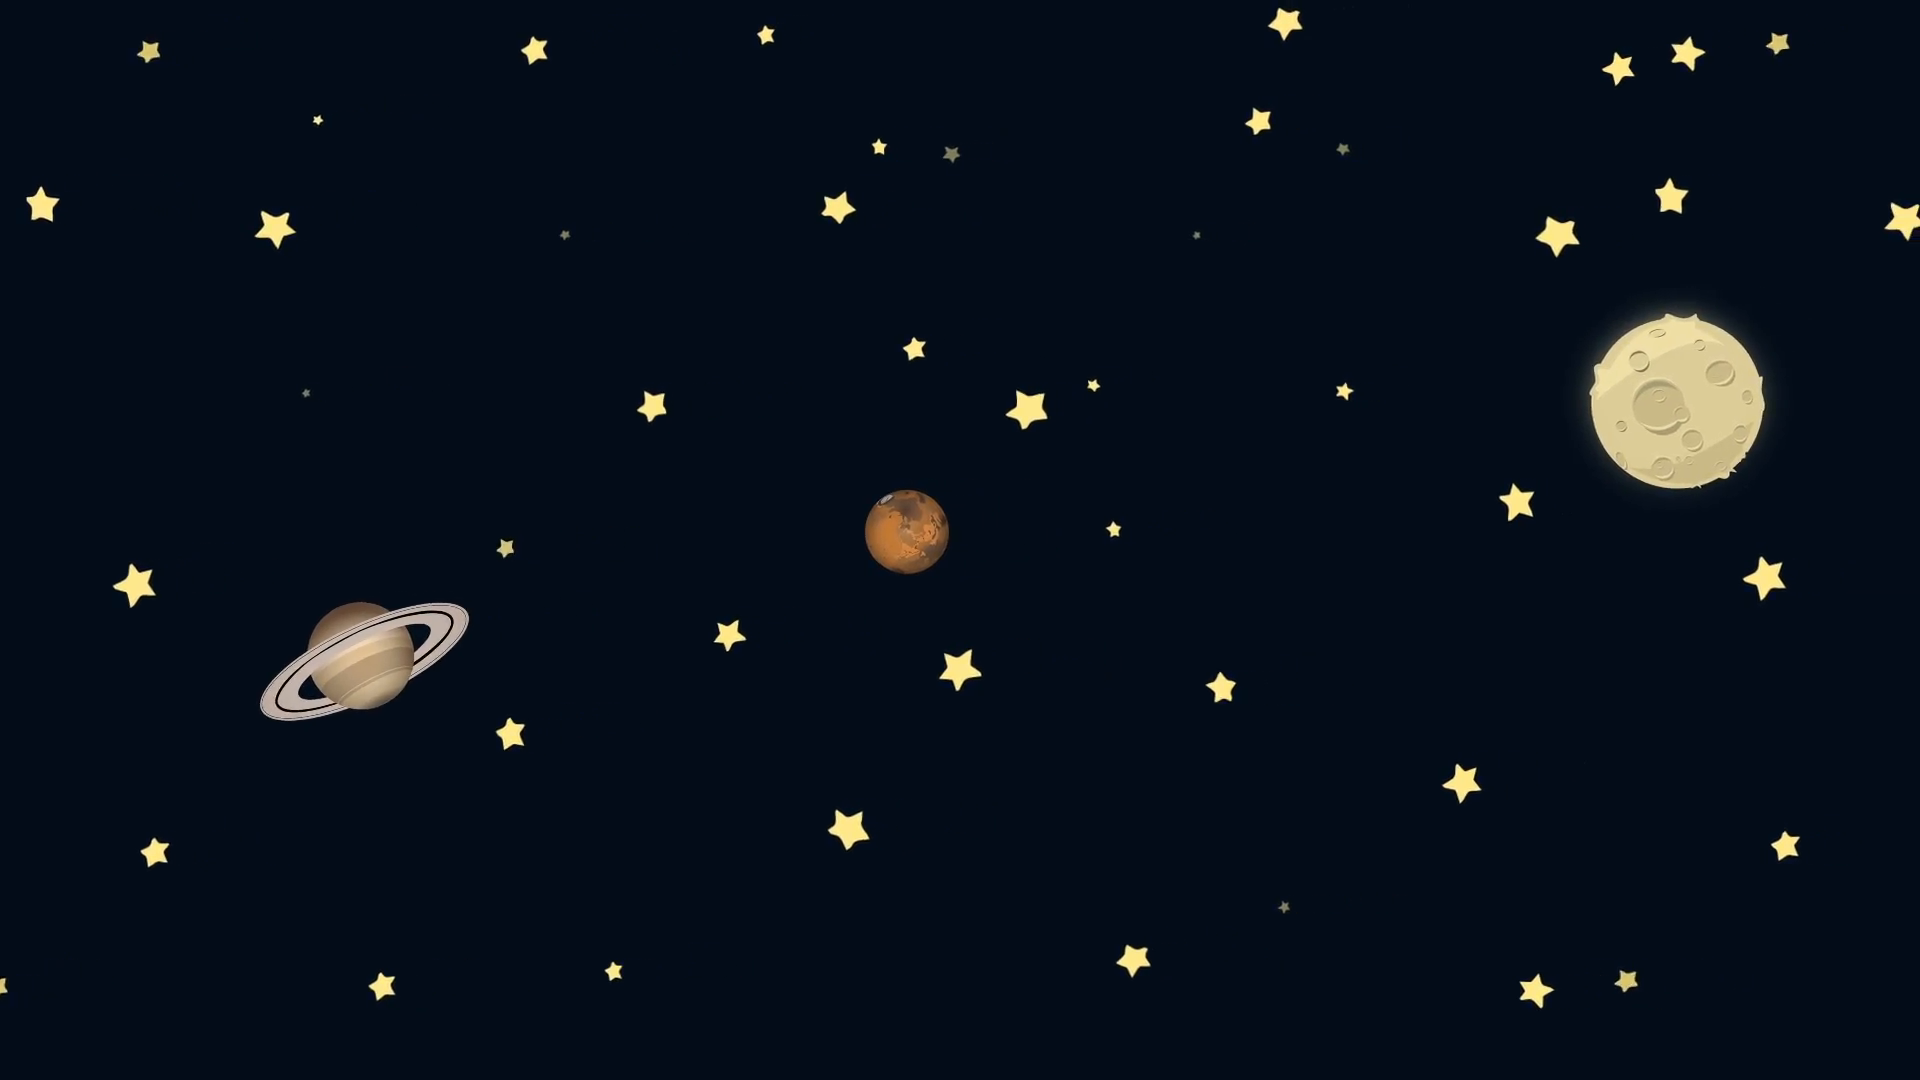 Cartoon Earth Saturn Mars and Moon in Space Motion Background 1920x1080